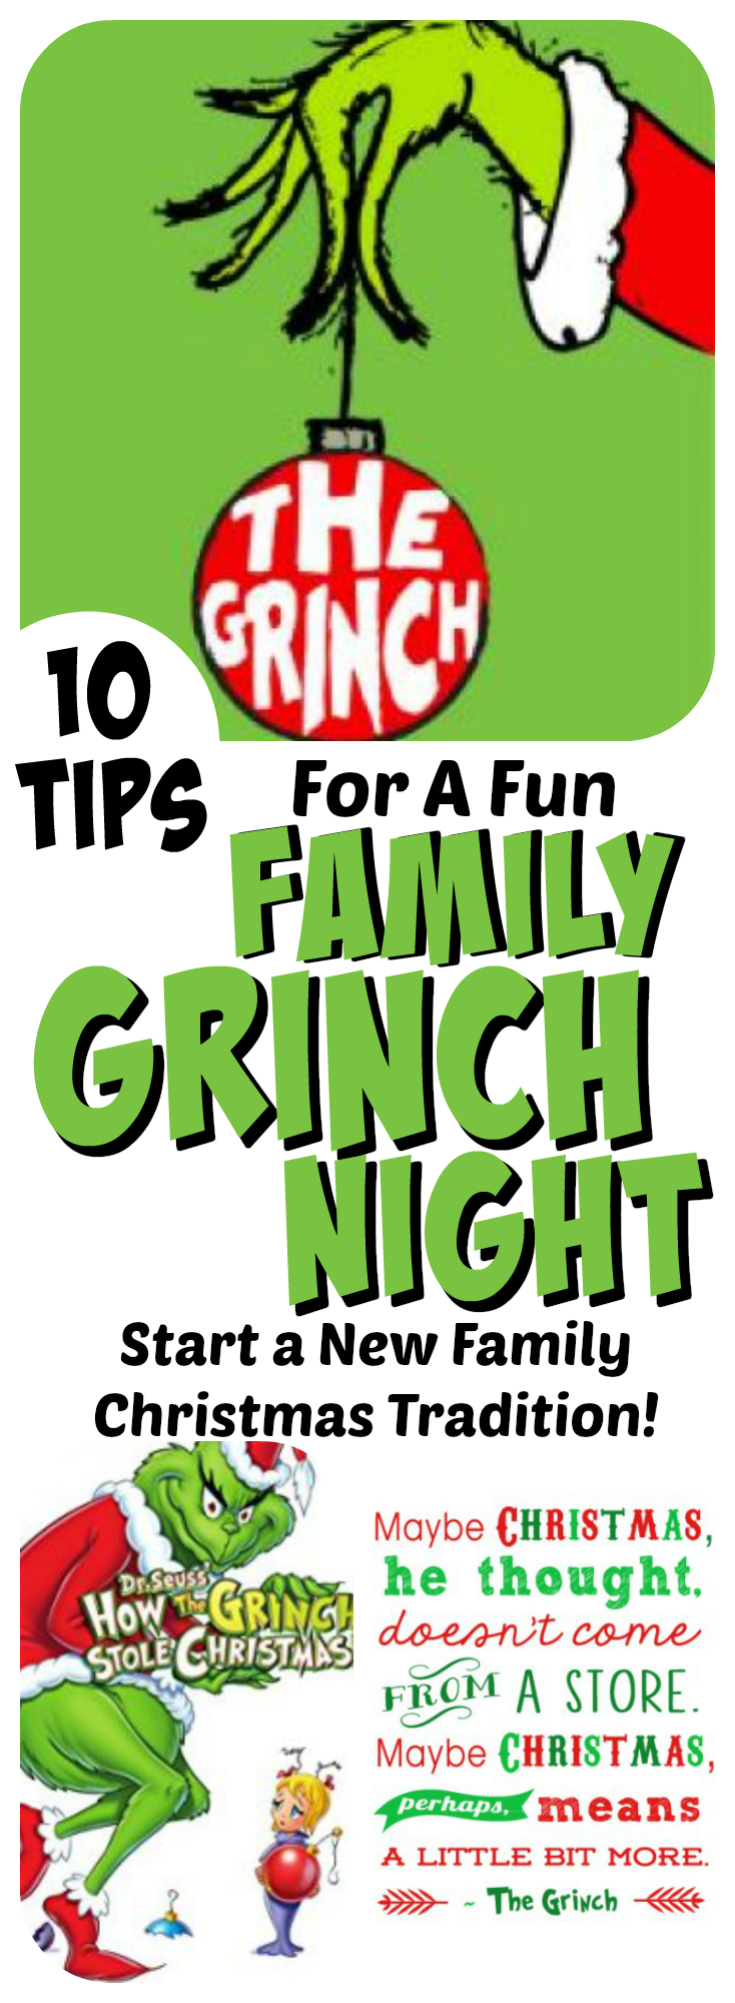 Grinch Night A Fun Family Christmas Tradition  Letters From Santa